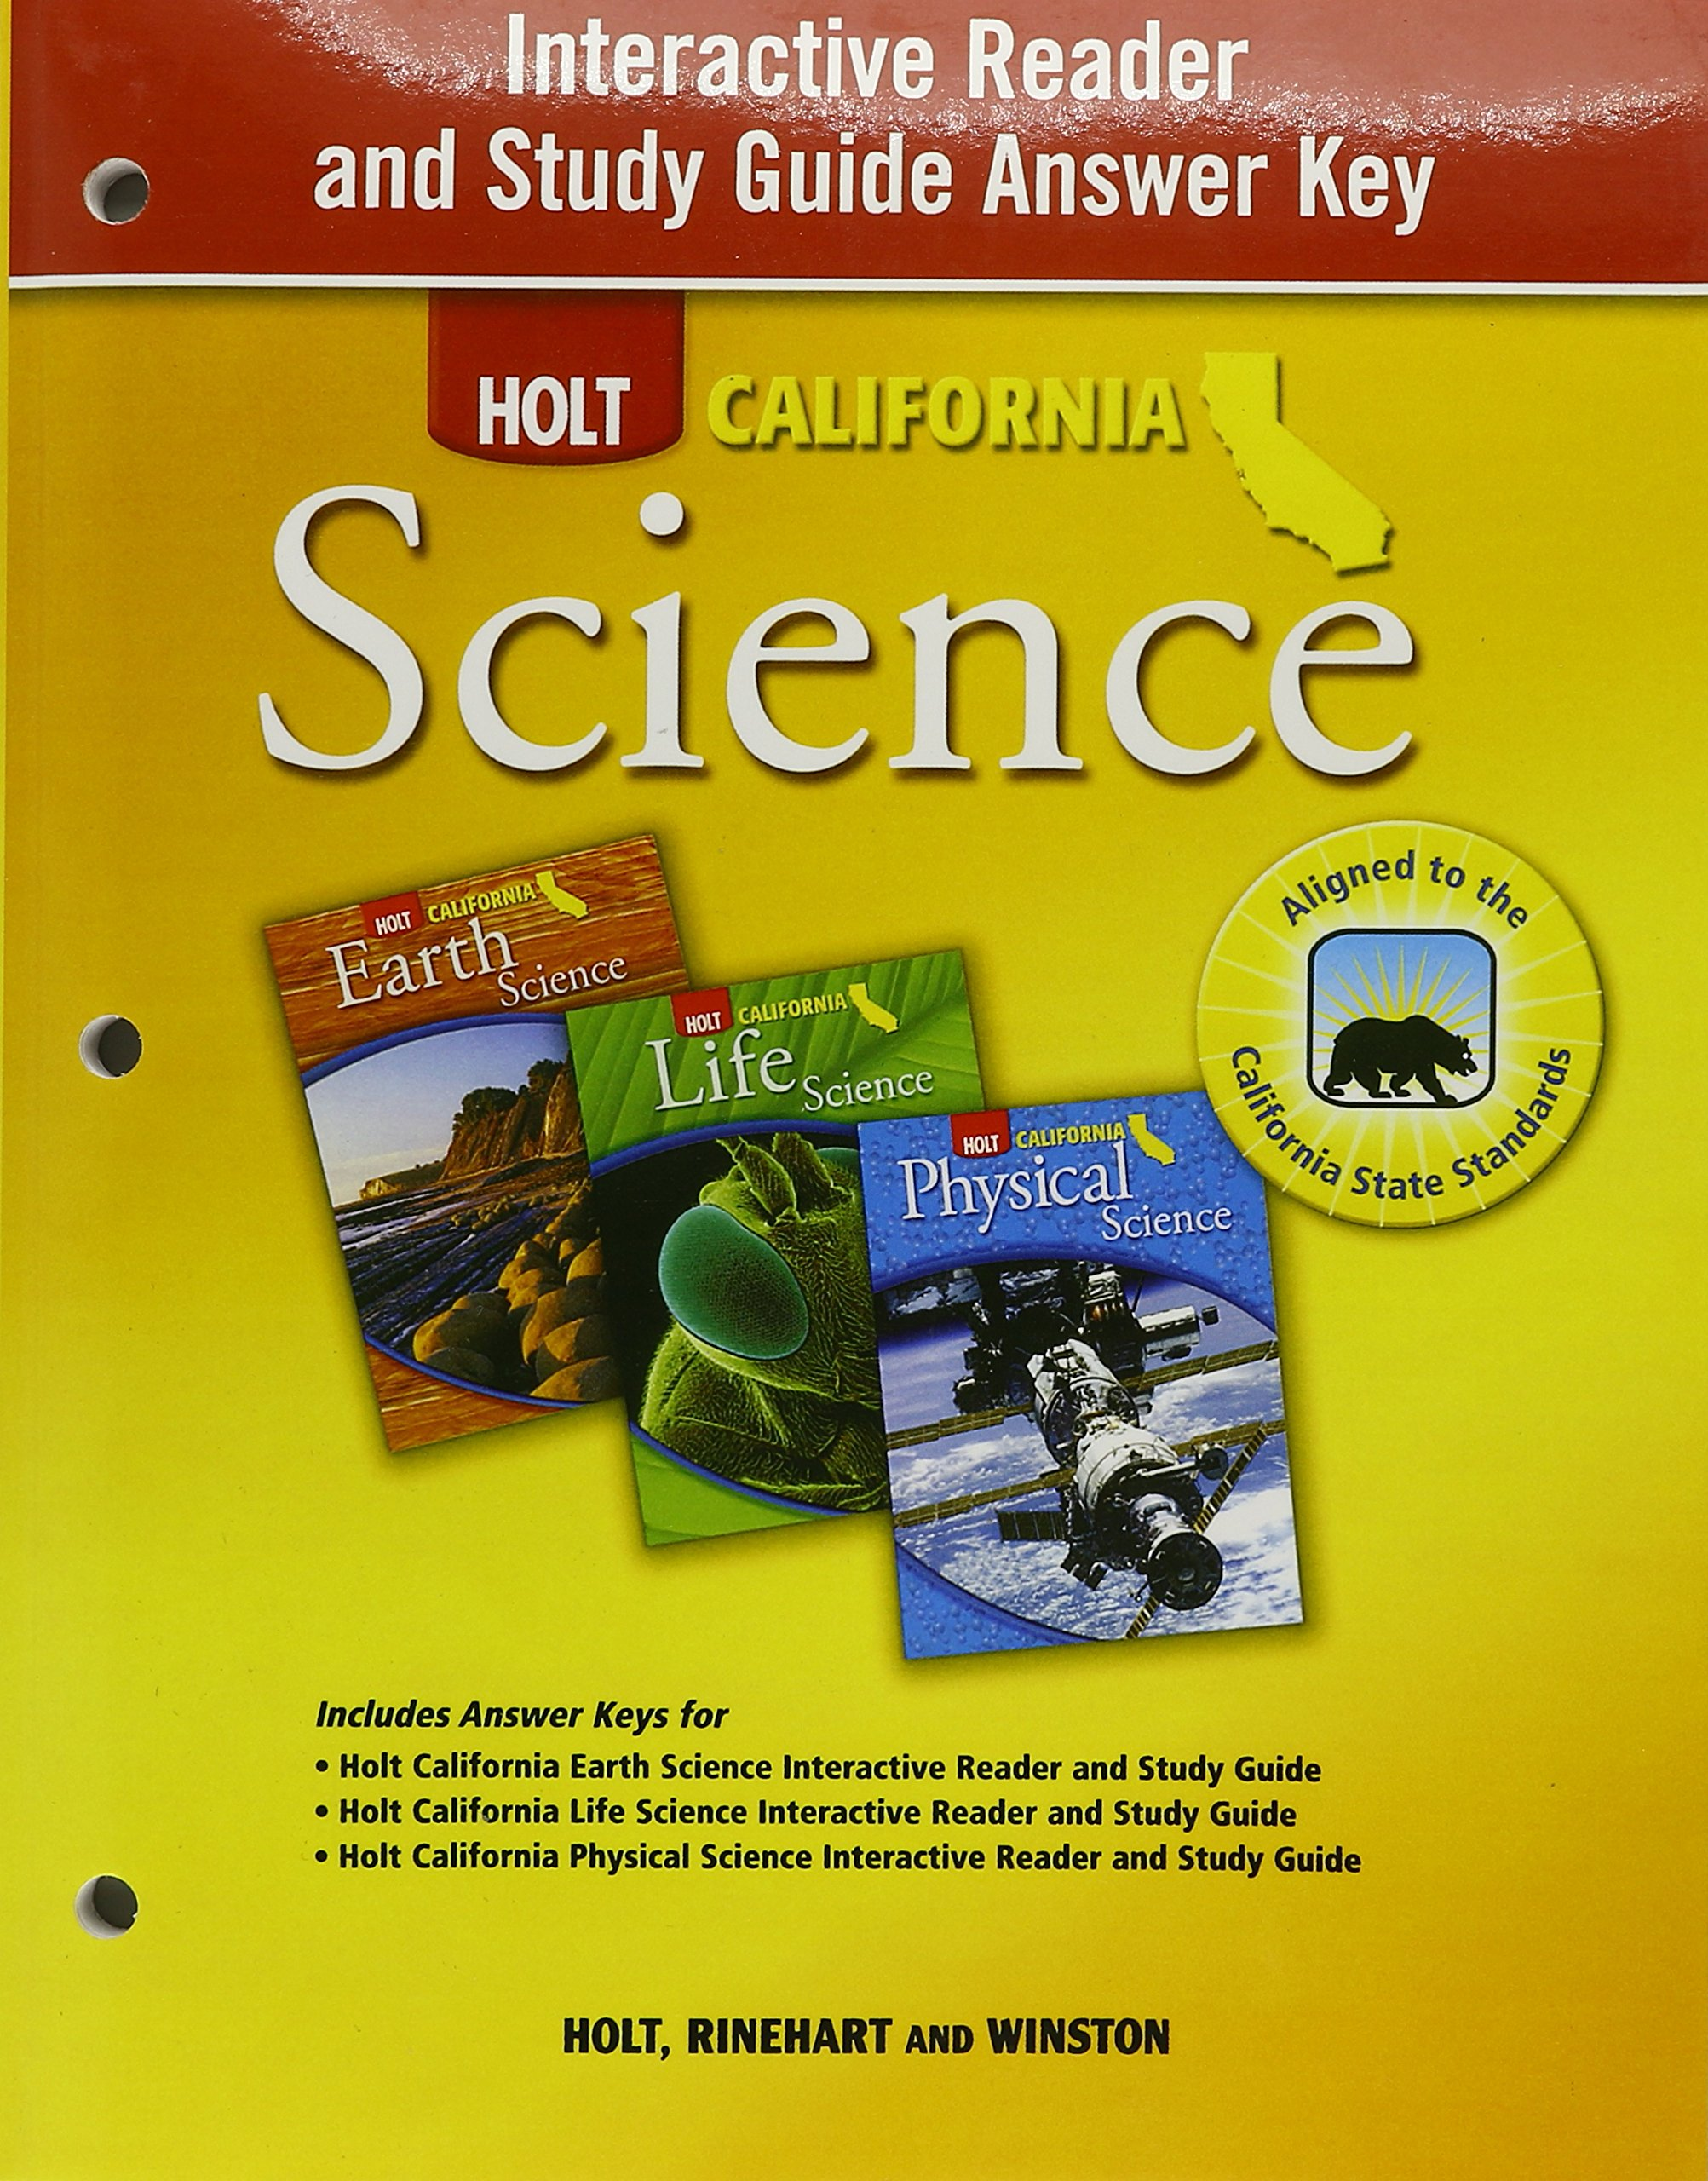 Holt Science & Technology California: Interactive Reader and Study Guide  with Answer Key Grades 6-8: Amazon.ca: Holt Rinehart & Winston: Books